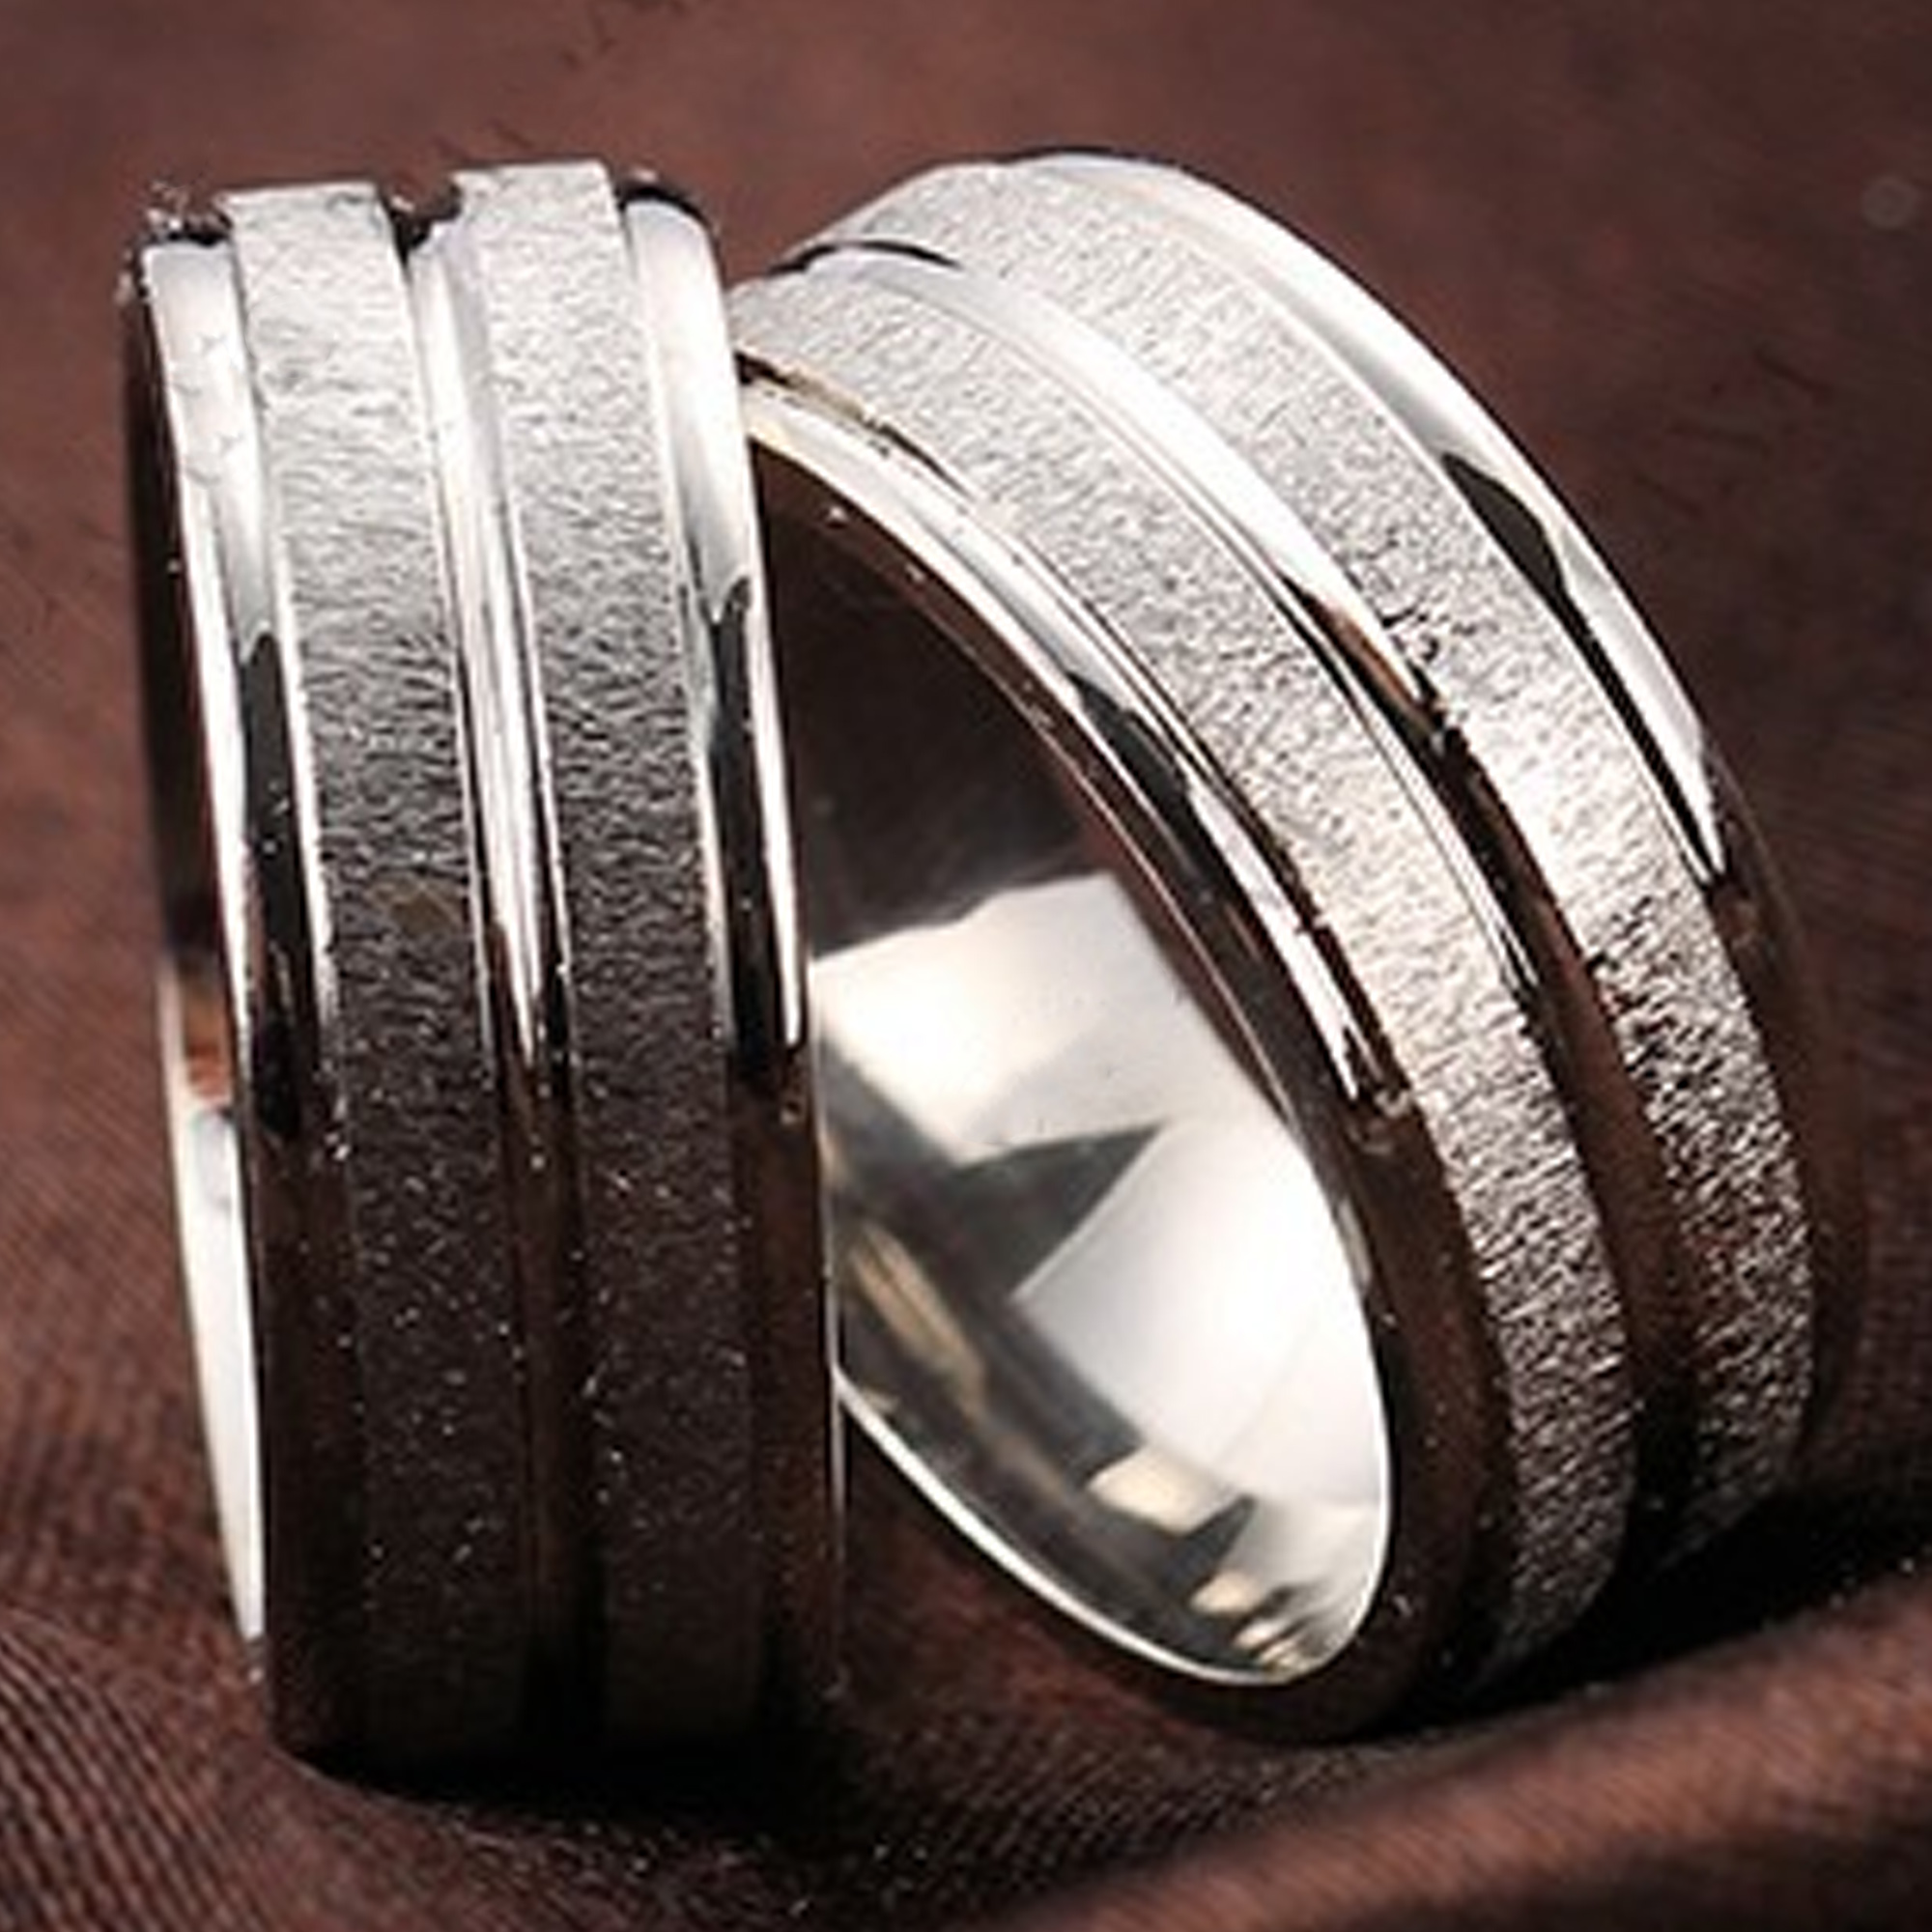 Stainless Steel Mens Wedding Band Ring 8mm: 8mm Sparkly Stainless Steel Silver Mens Ring Womens